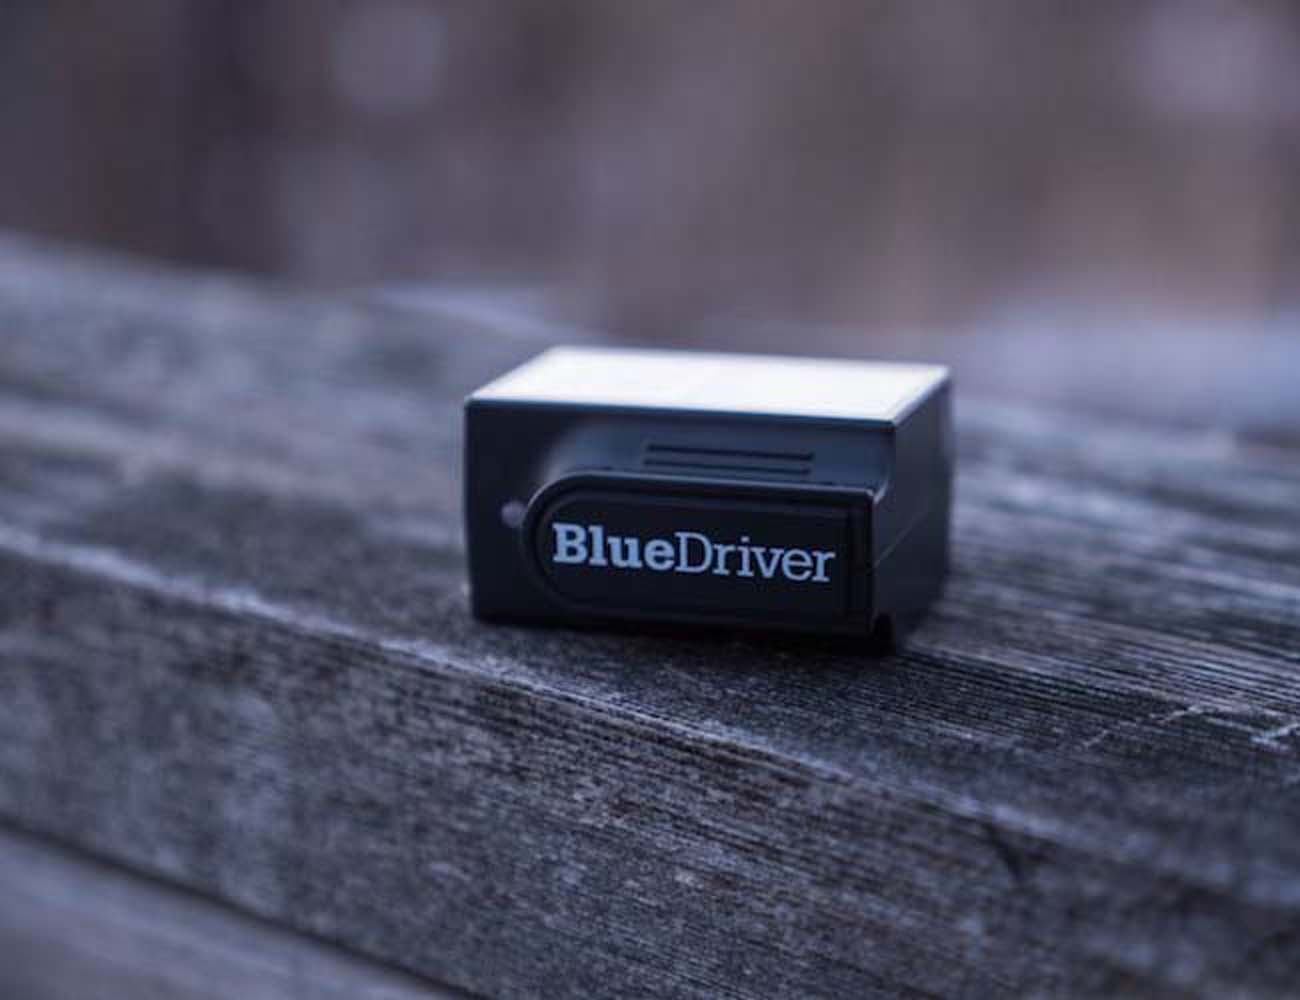 BlueDriver+%26%238211%3B+Bluetooth+Professional+OBDII+Scan+Tool+For+IPhone%C2%AE%2C+IPad%C2%AE%2C+Android